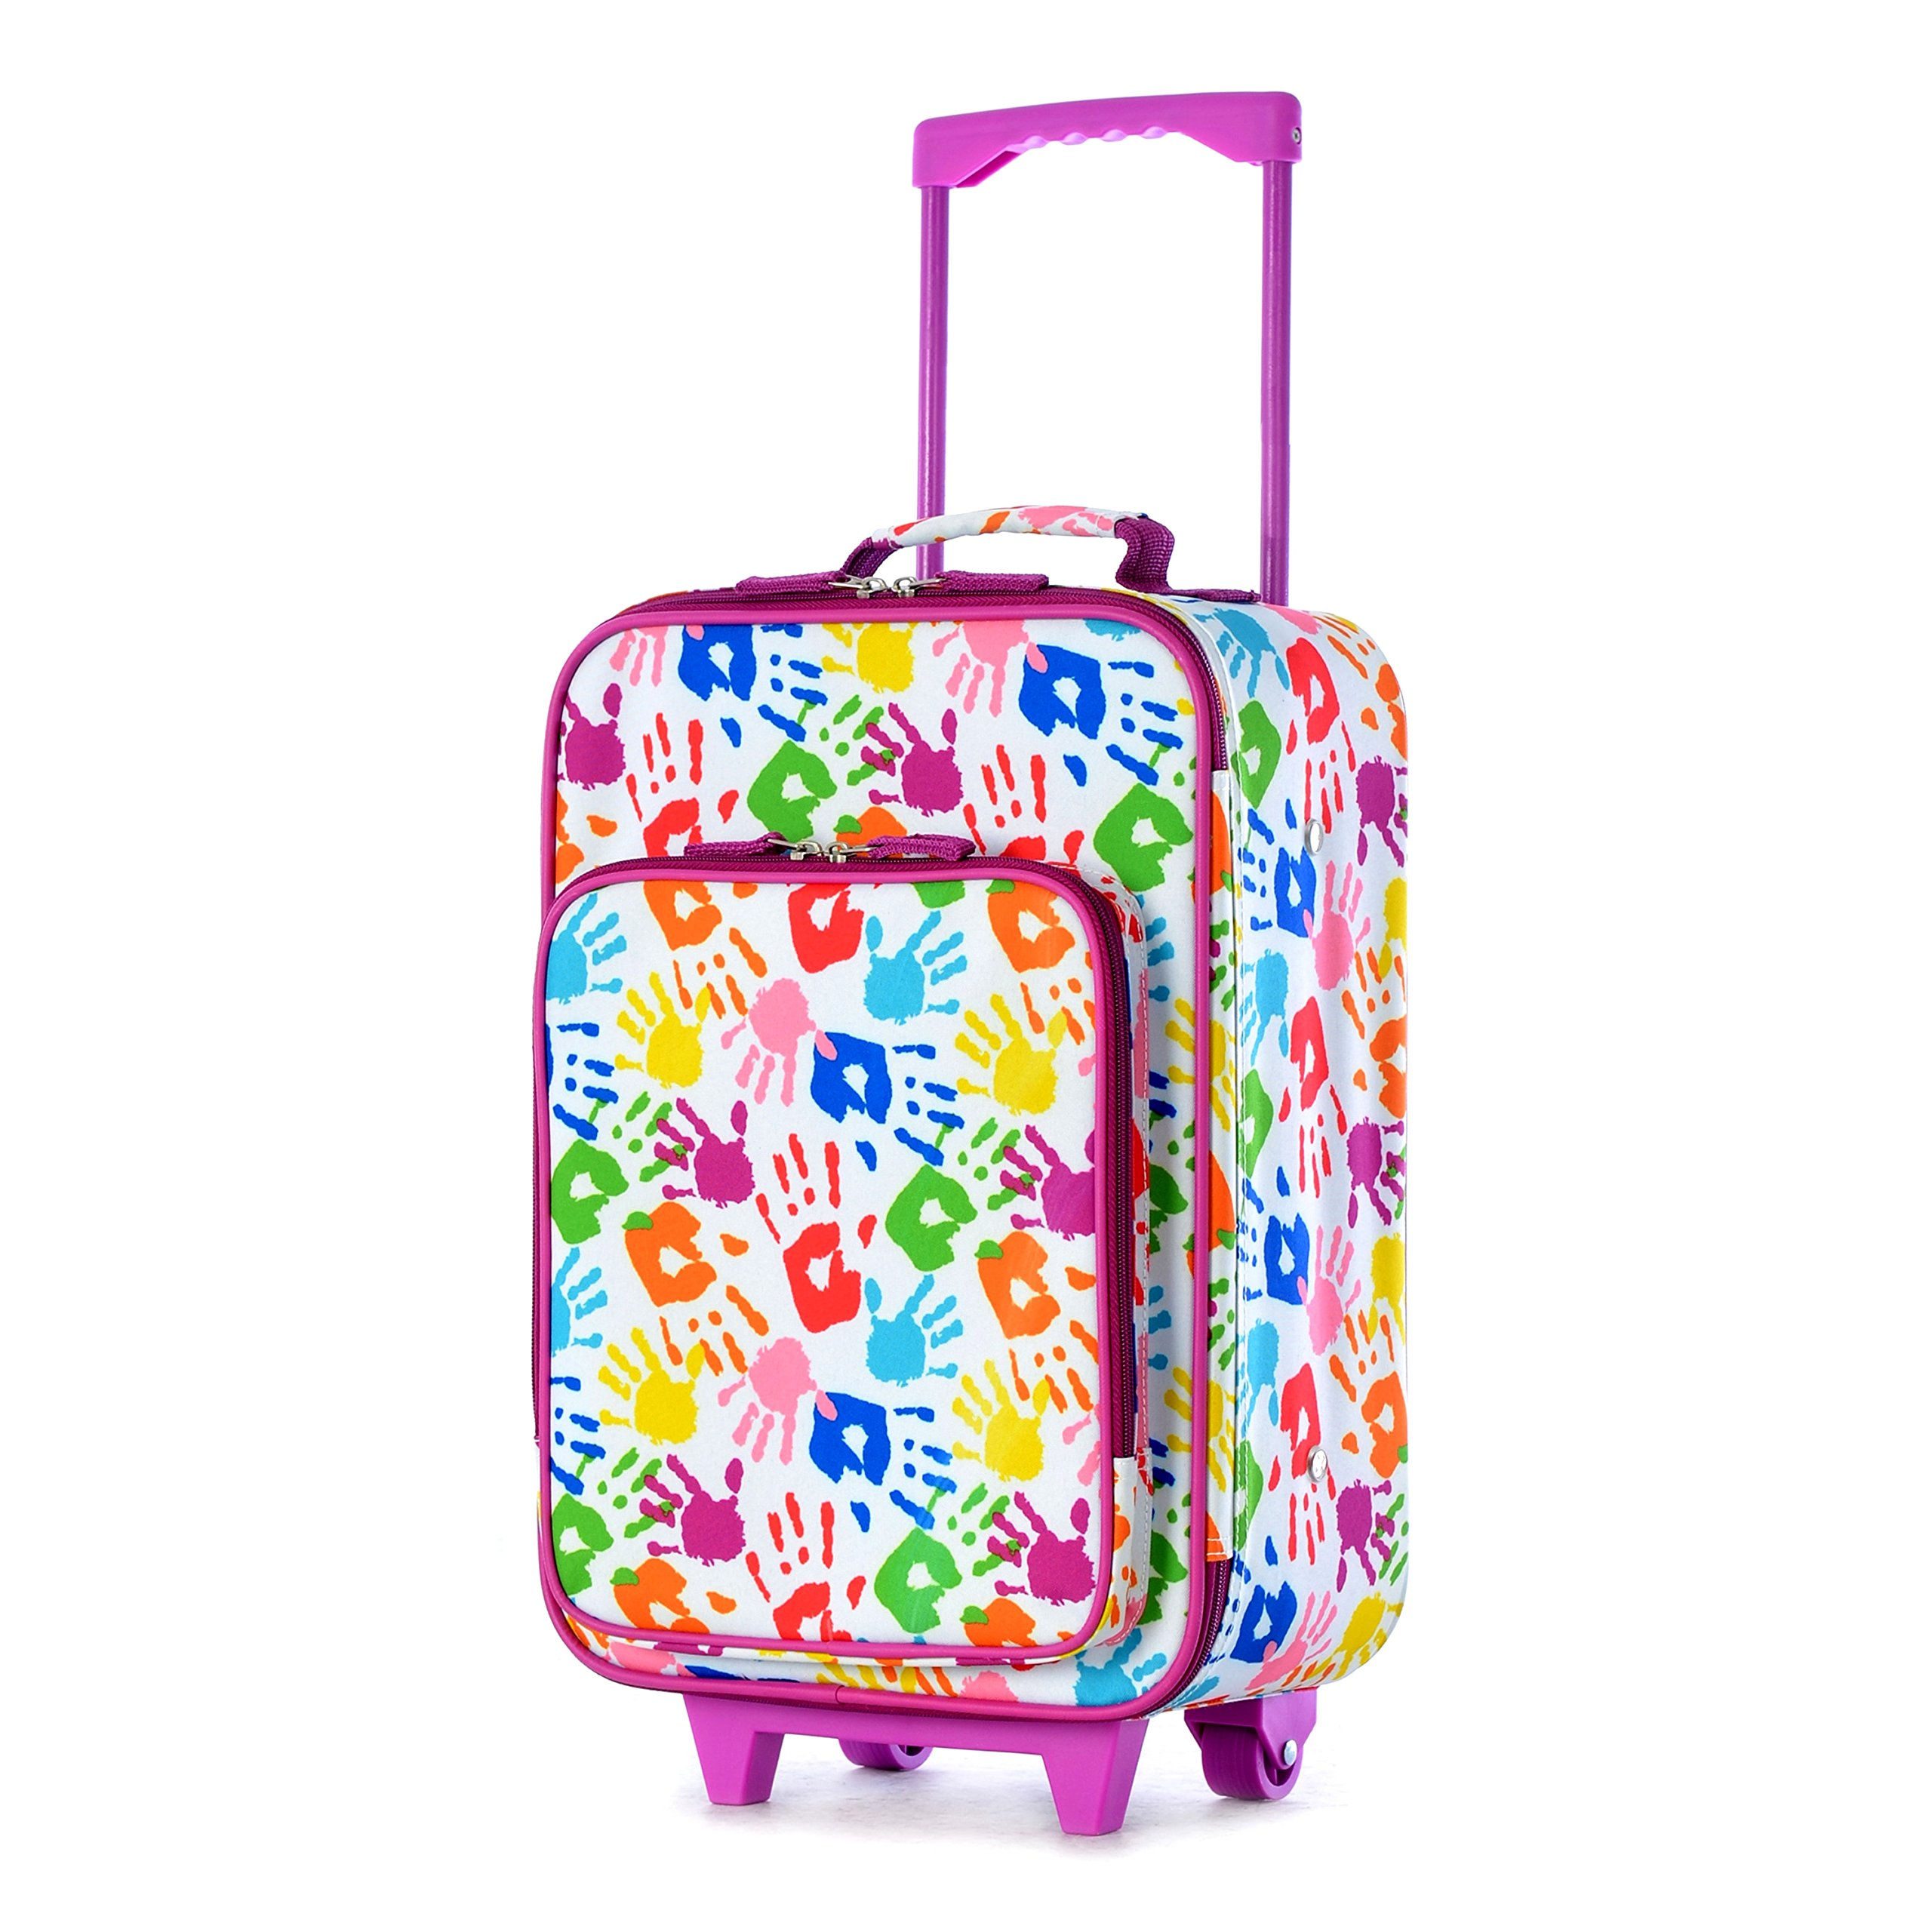 DH Kids Purple Green Blue Pink Handprint Theme Rolling Upright Suitcase, Beautiful All Over Fun Paint Print Wheeled Luggage, Duffel with Wheels, Wheeling Luggage, Lightweight Softsided, Fashionable